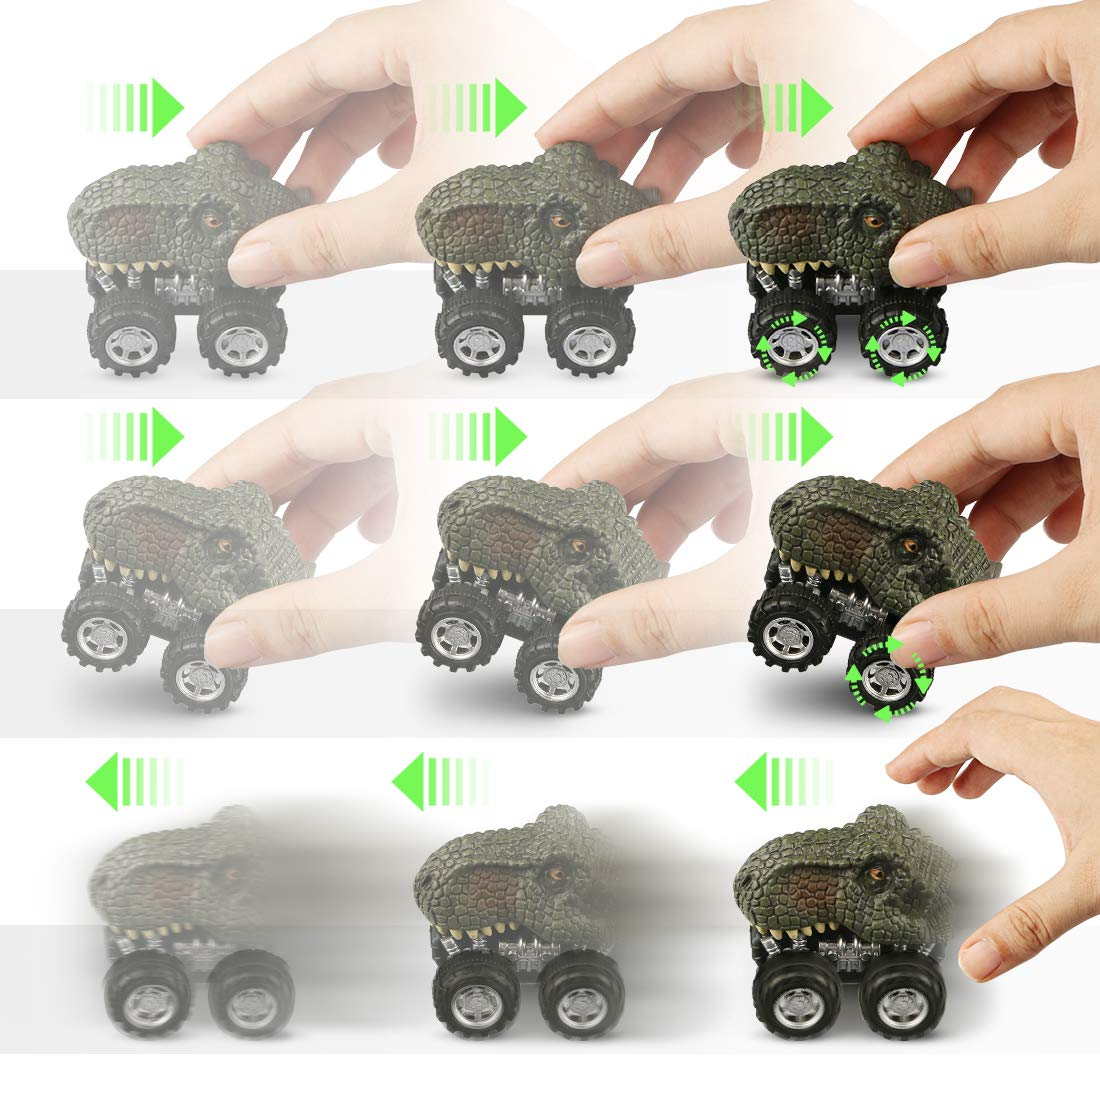 WOSTOO Dinosaur Cars, 6 Pcs Pull Back Dinosaur Toy Cars, Non-Toxic & Safe Plastic Mini Pull Back Animal Car Toy for Toddlers Boys Girls, Animal Vehicles for Kids Creative Gifts